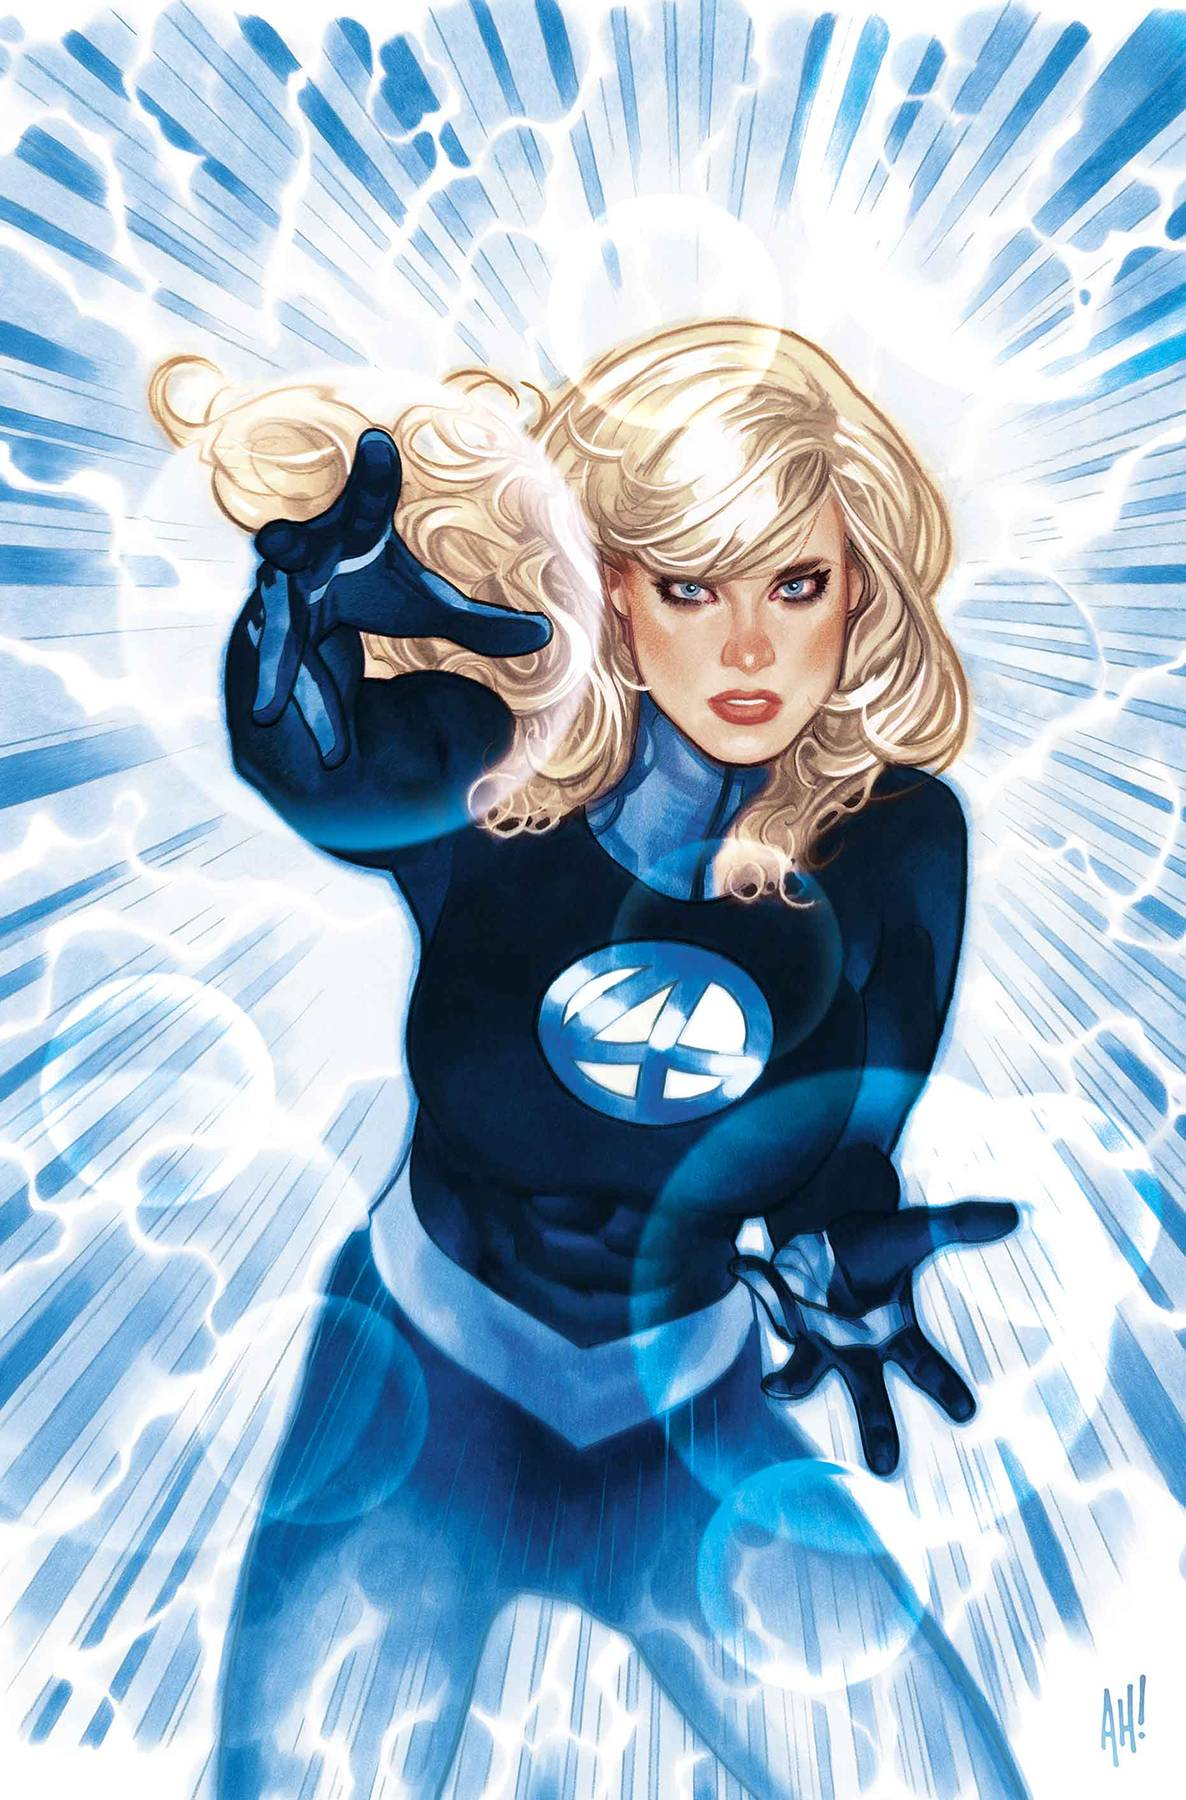 INVISIBLE WOMAN 1 of 5.jpg